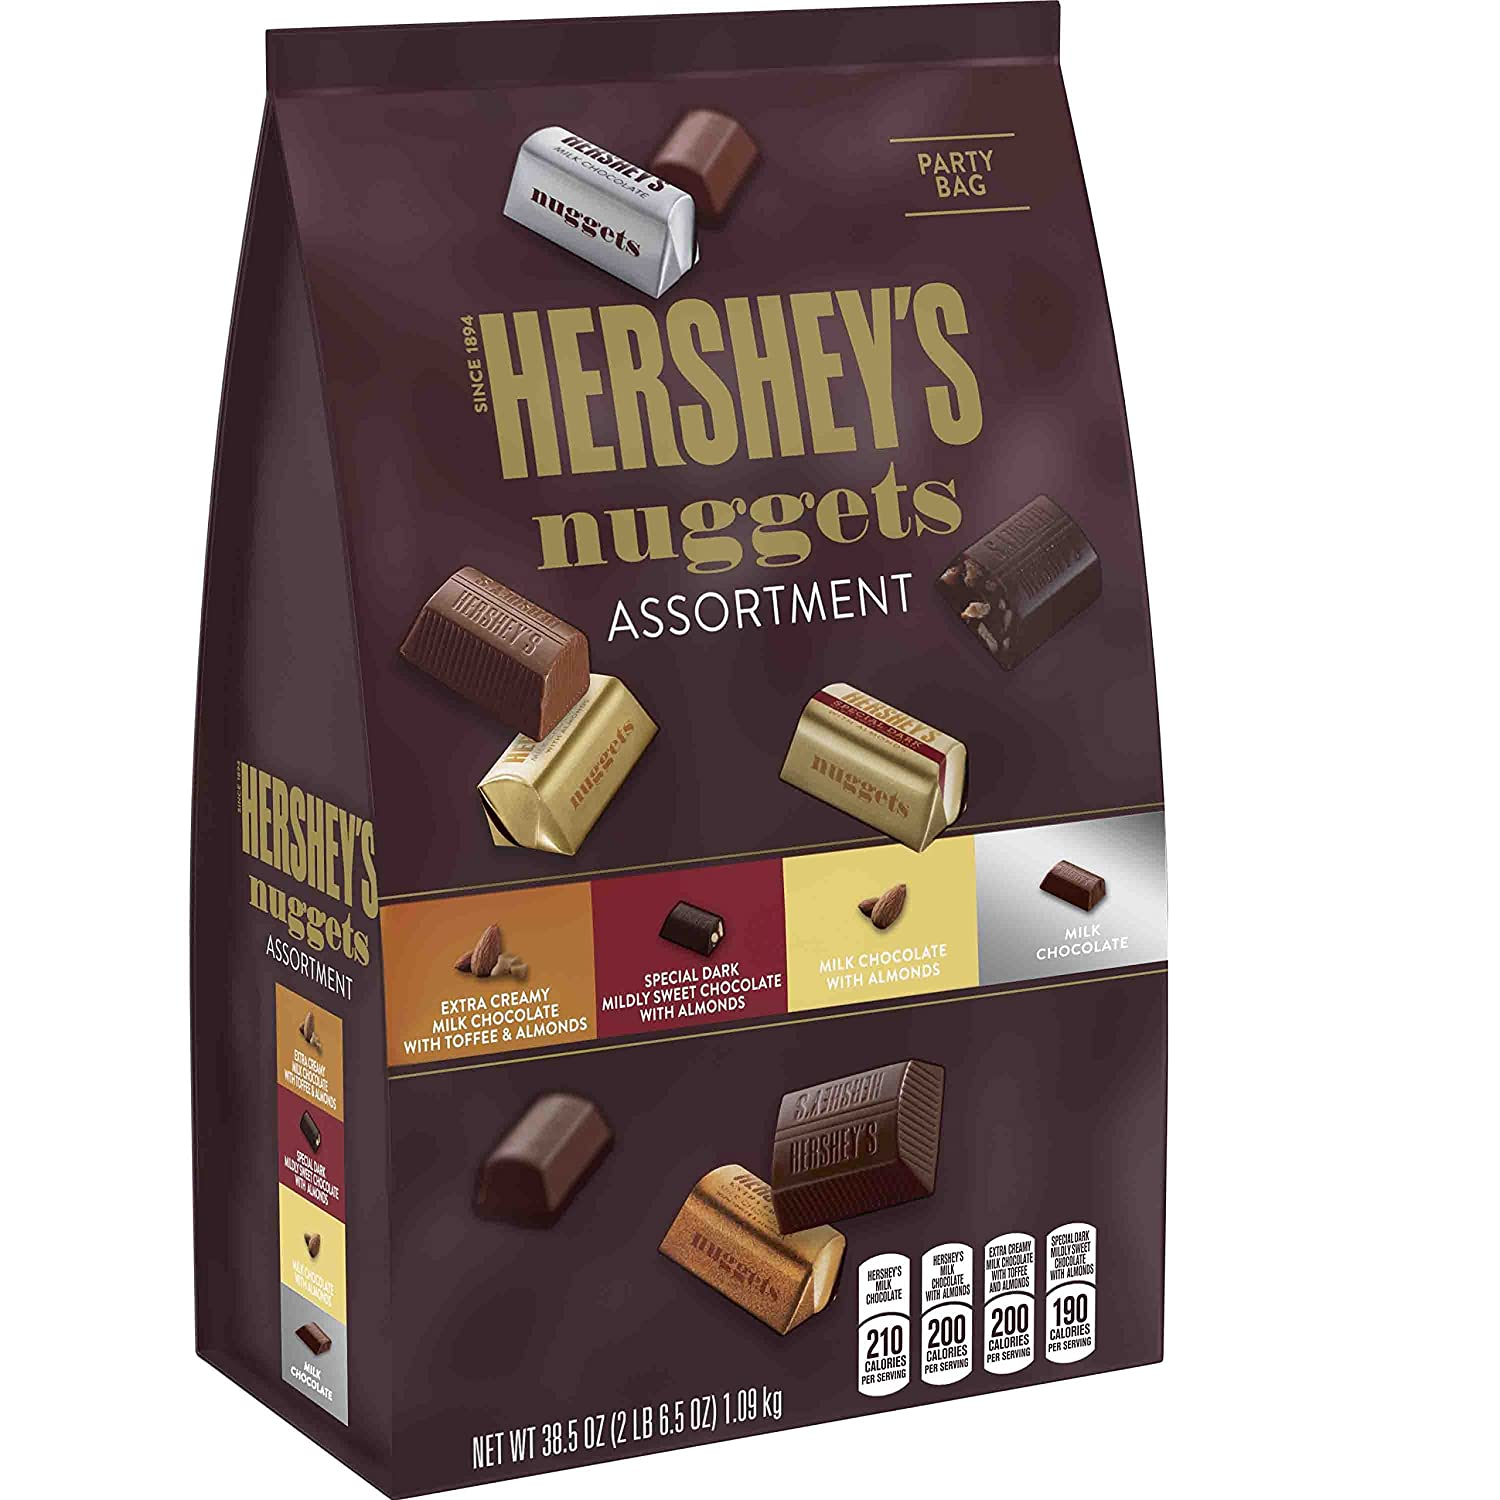 Amazon.com : Hershey's Nuggets Chocolates Assortment, 38.5 oz ...